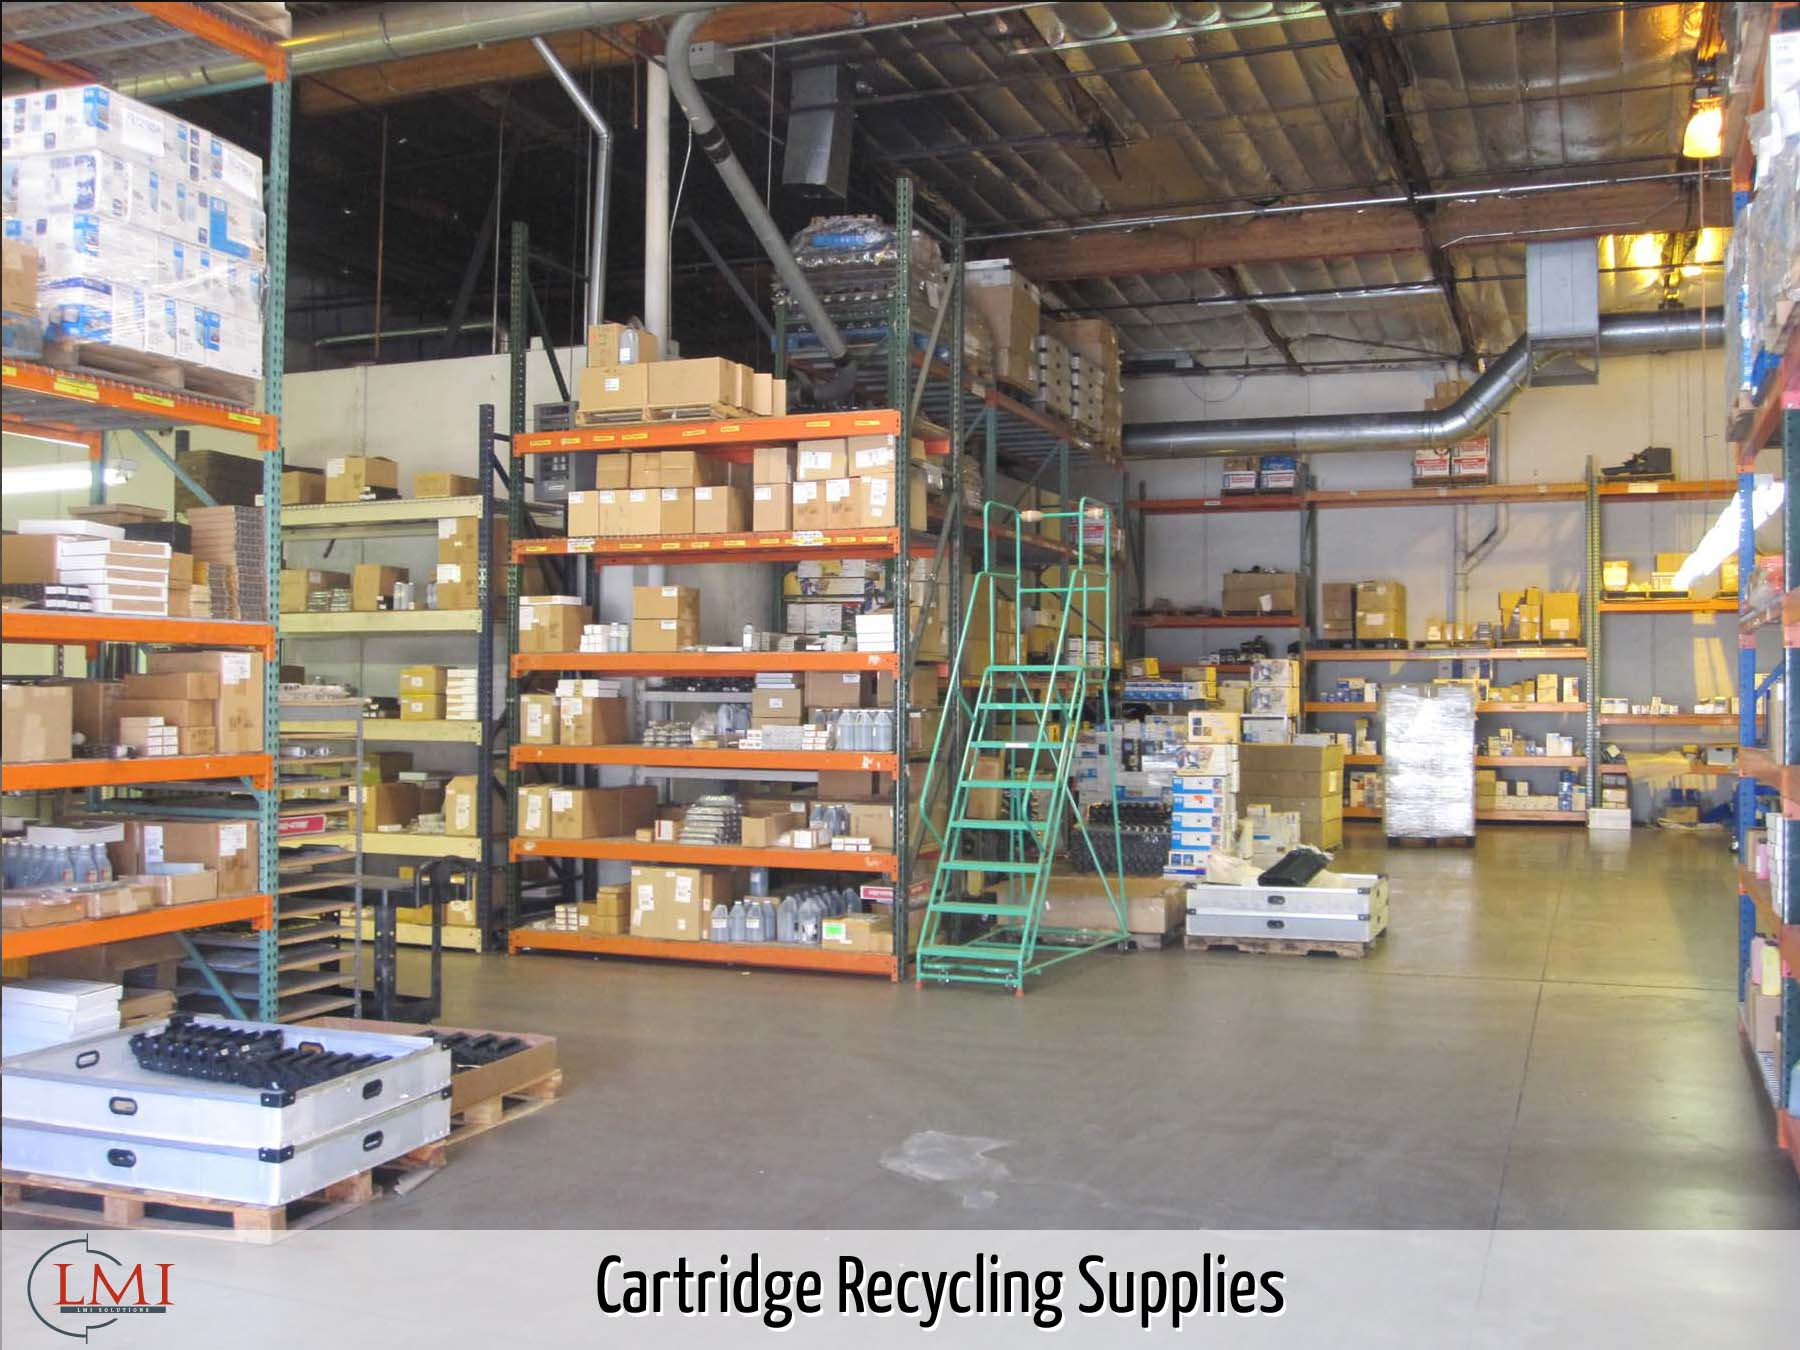 Cartridge Recycling Supplies